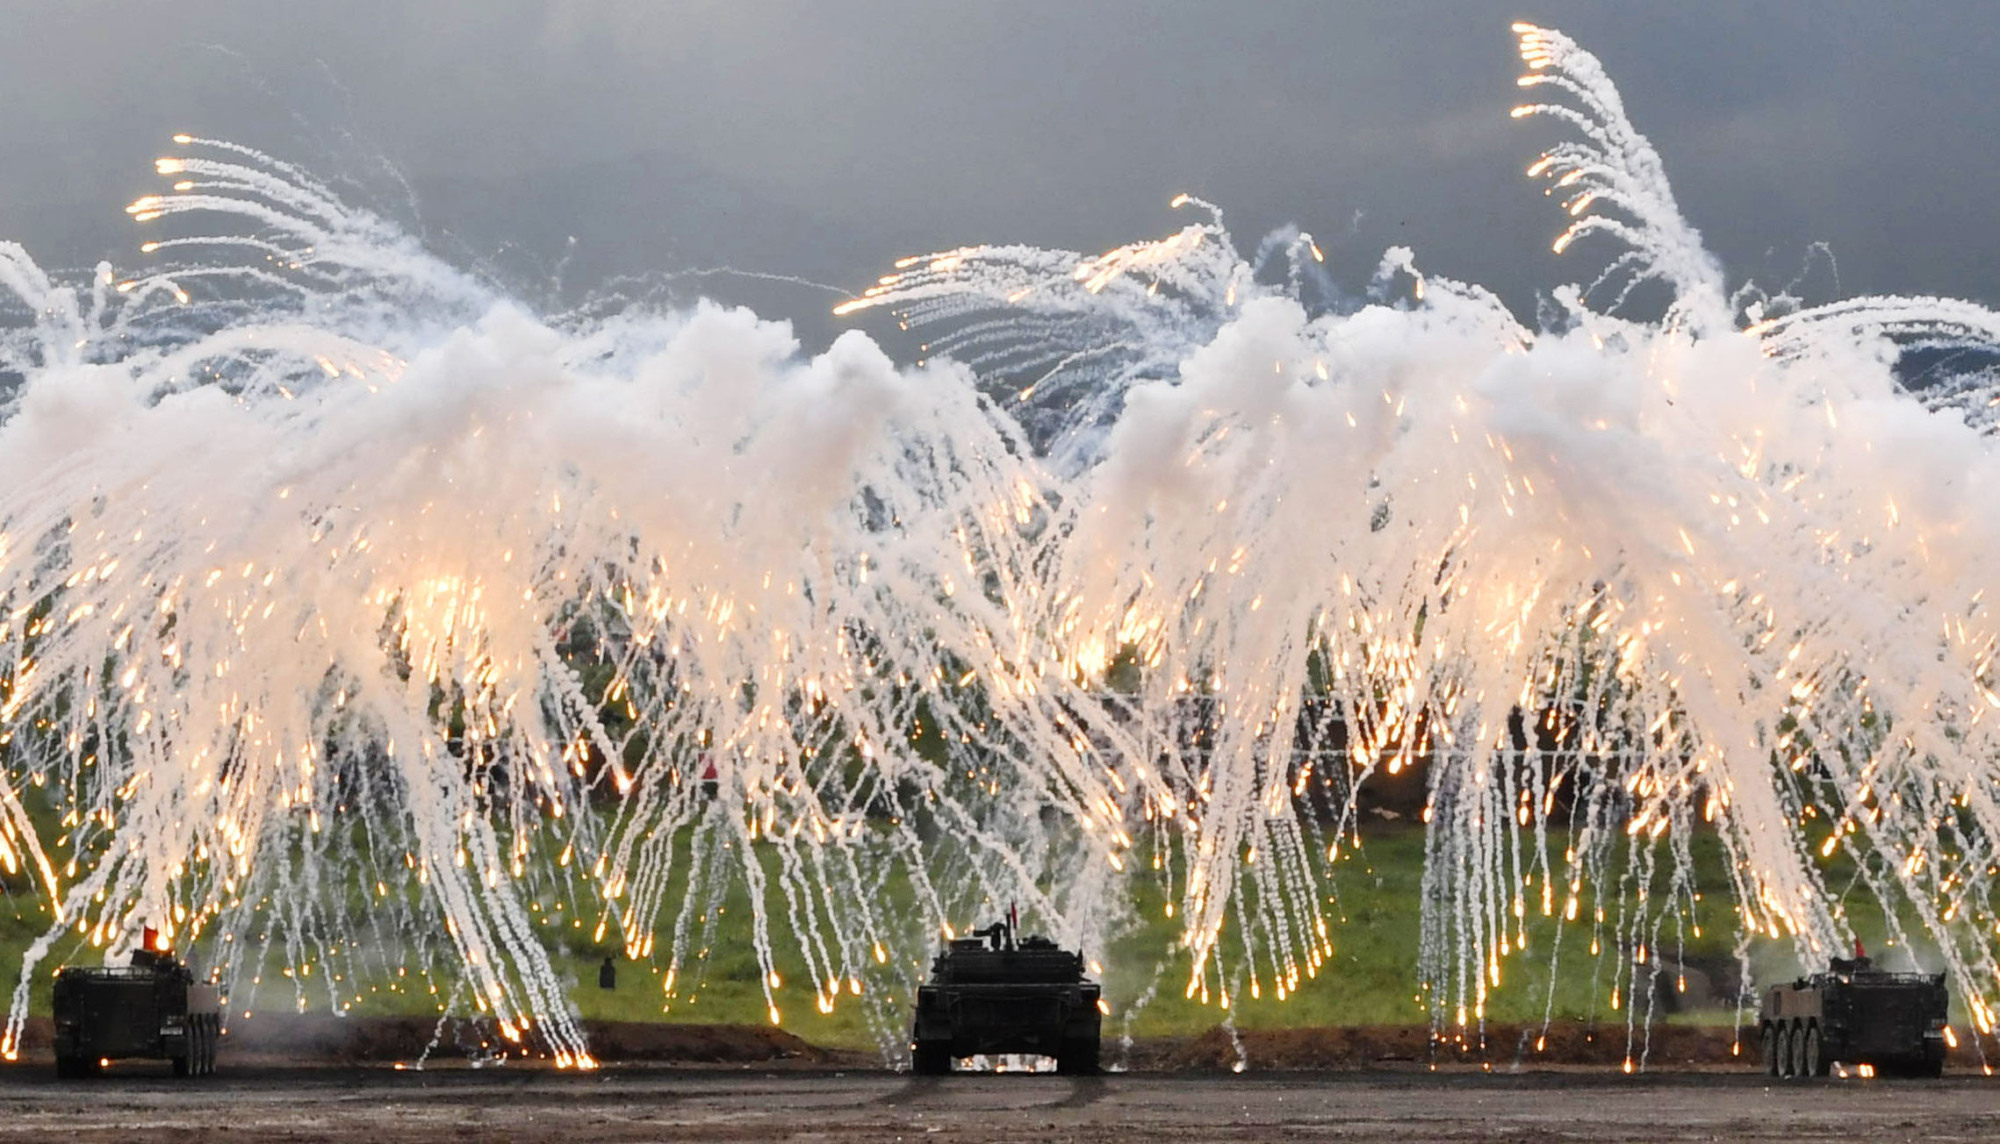 The Ground Self-Defense Force conducts a live-ammunition drill at training grounds at the foot of Mount Fuji in Shizuoka Prefecture on Sunday. | KYODO